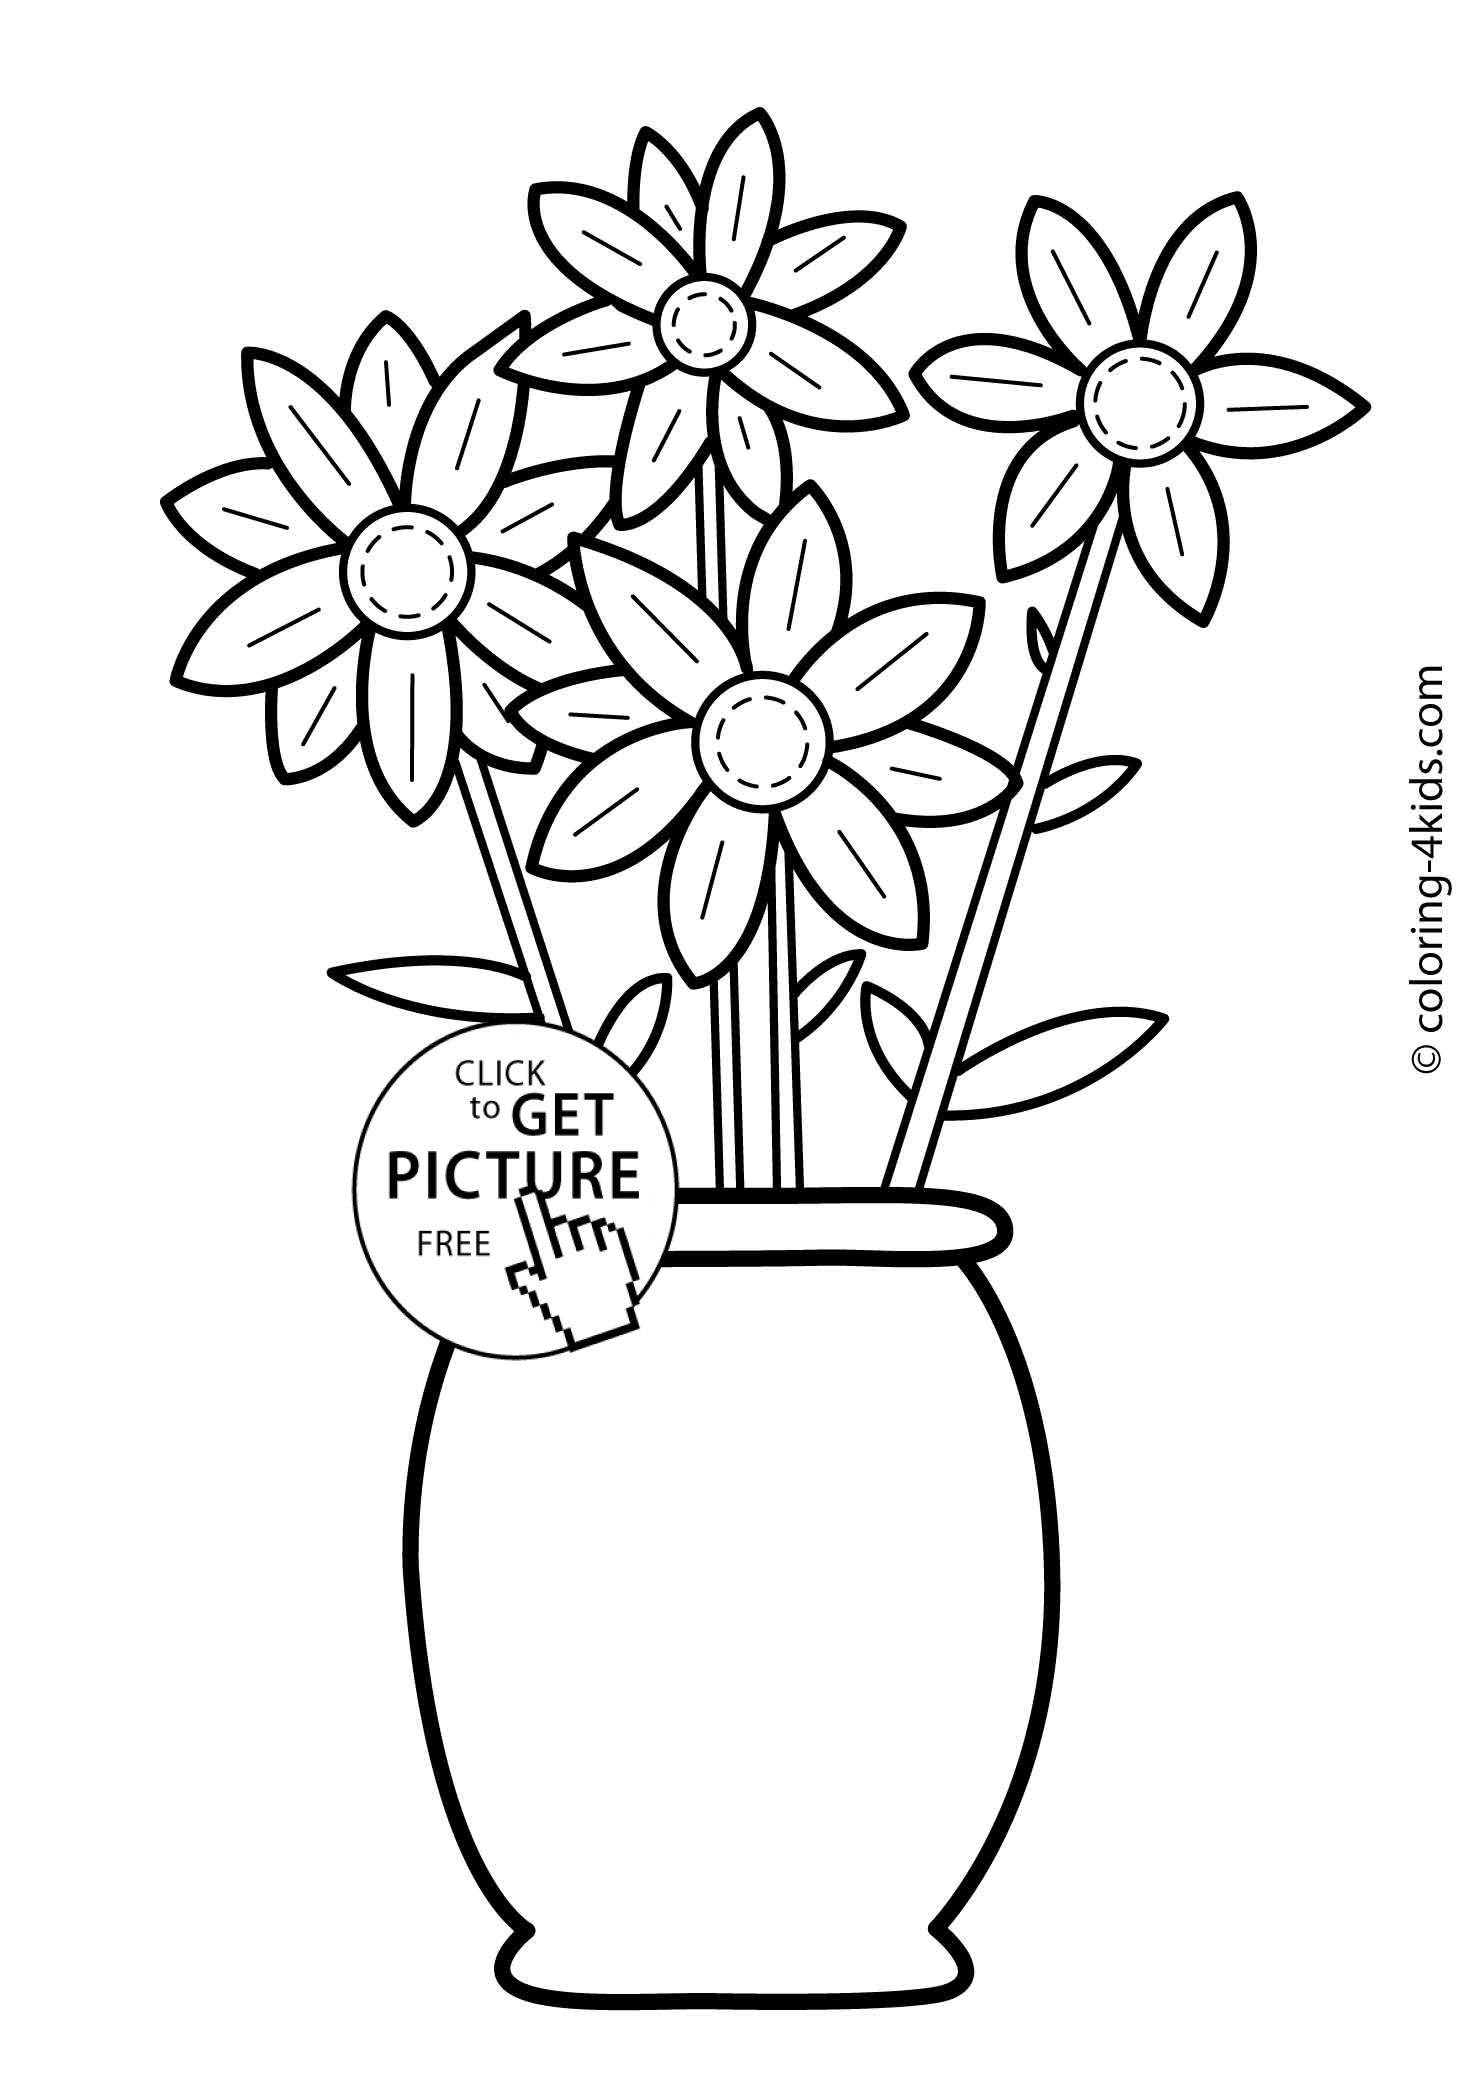 childrens coloring pages flowers free printable flower coloring pages for kids best coloring childrens pages flowers